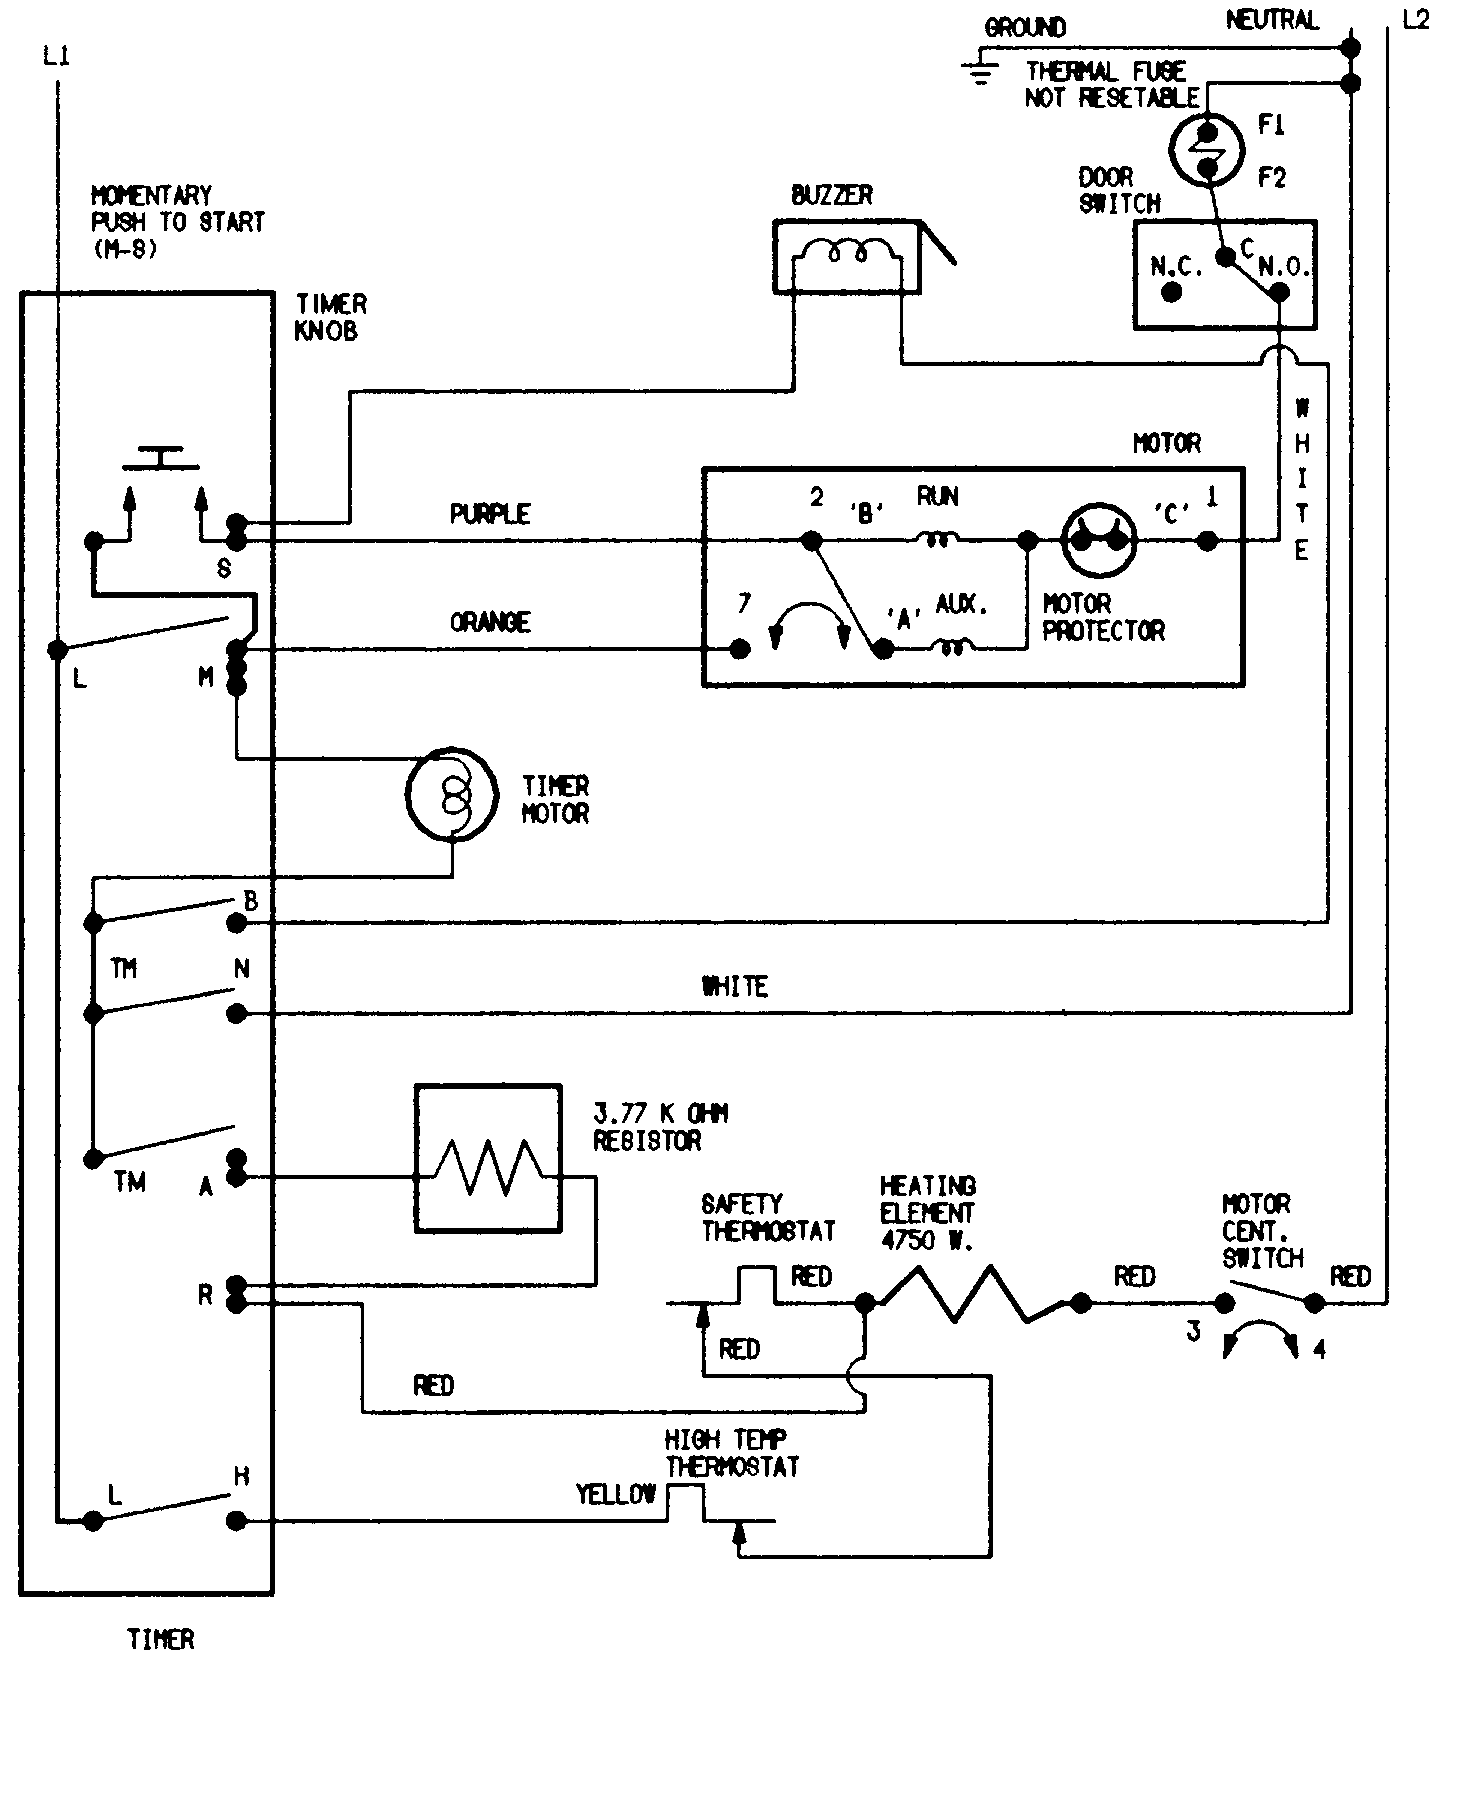 Residential Electric Panel Wiring Diagram Residential